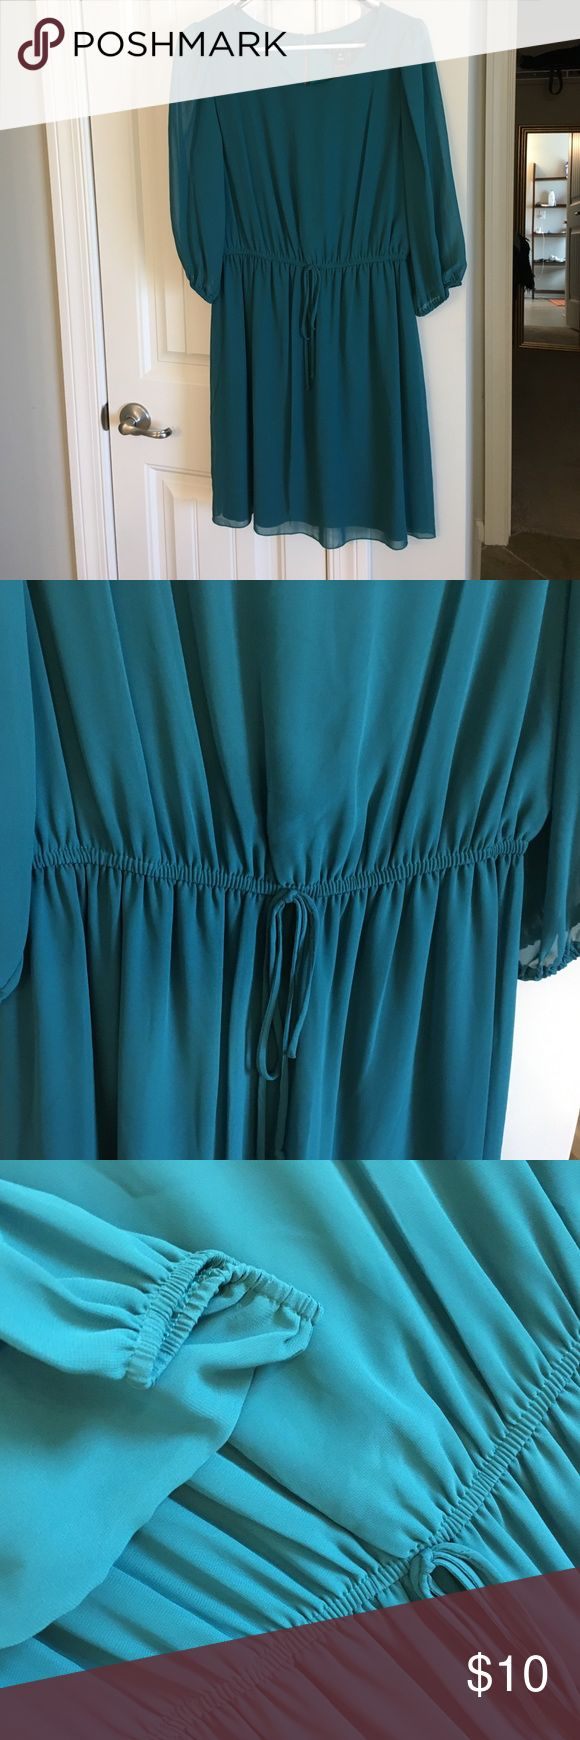 Teal Long sleeve draw string waist dress Teal, long sleeve knee length dress. Light float material with teal lining. Elastic around arm holes. Beautiful color. Size 10. Great Condition. Never worn. Dresses